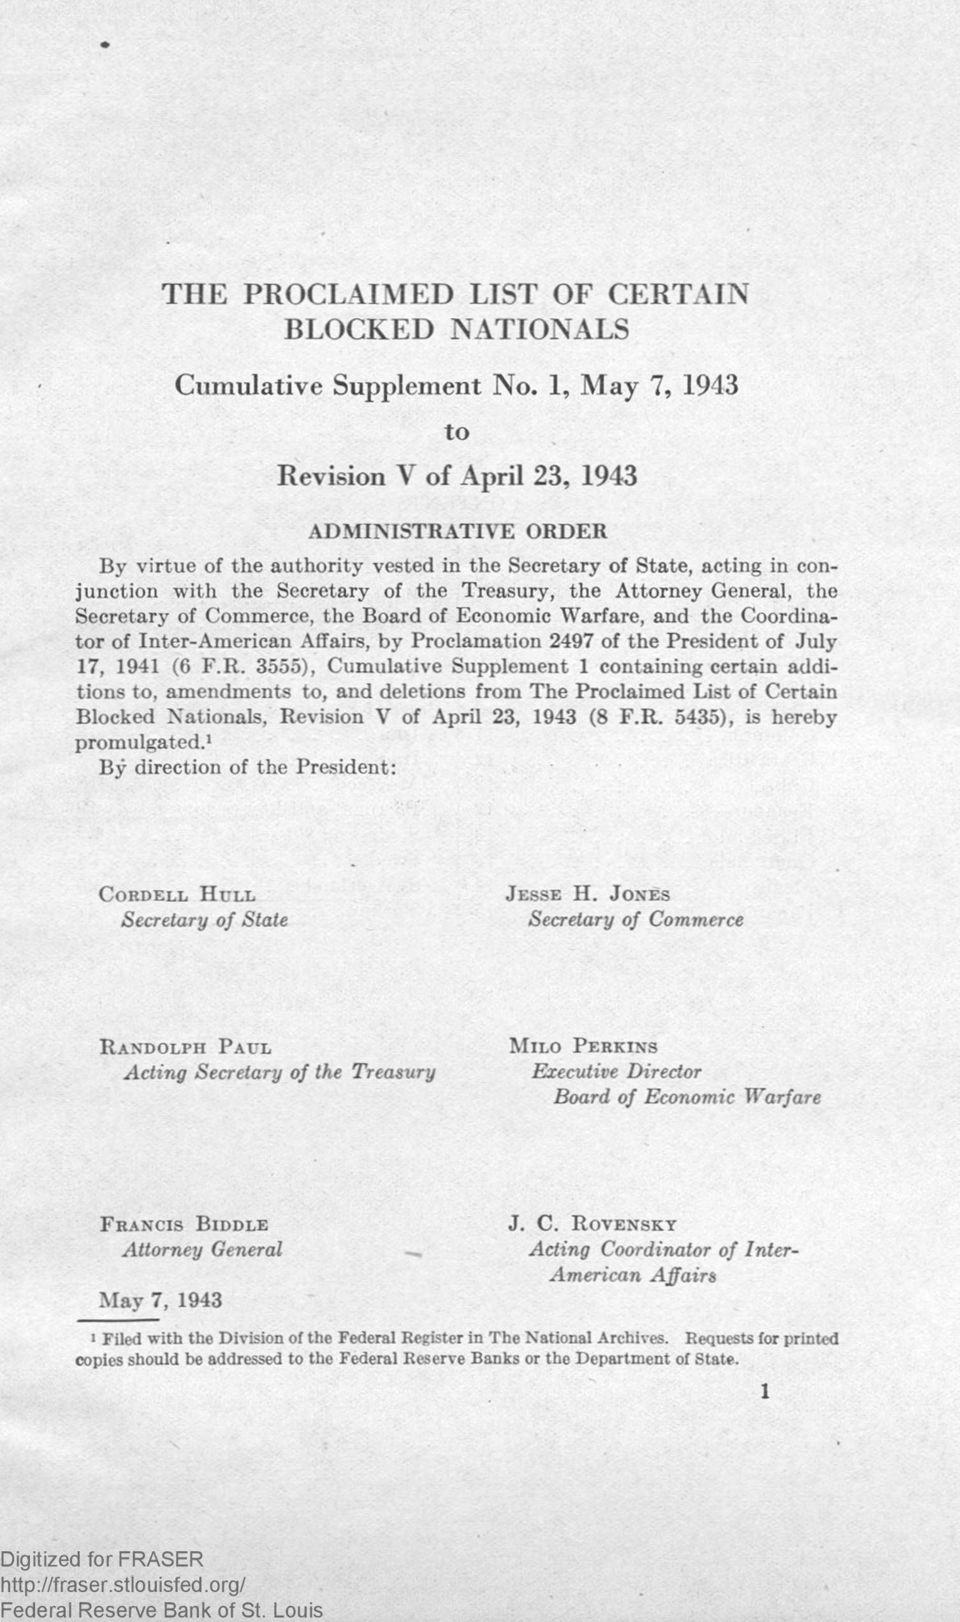 General, the Secretary of Commerce, the Board of Economic Warfare, and the Coordinator of Inter-American Affairs, by Proclamation 2497 of the President of July 17, 1941 (6 F.R.